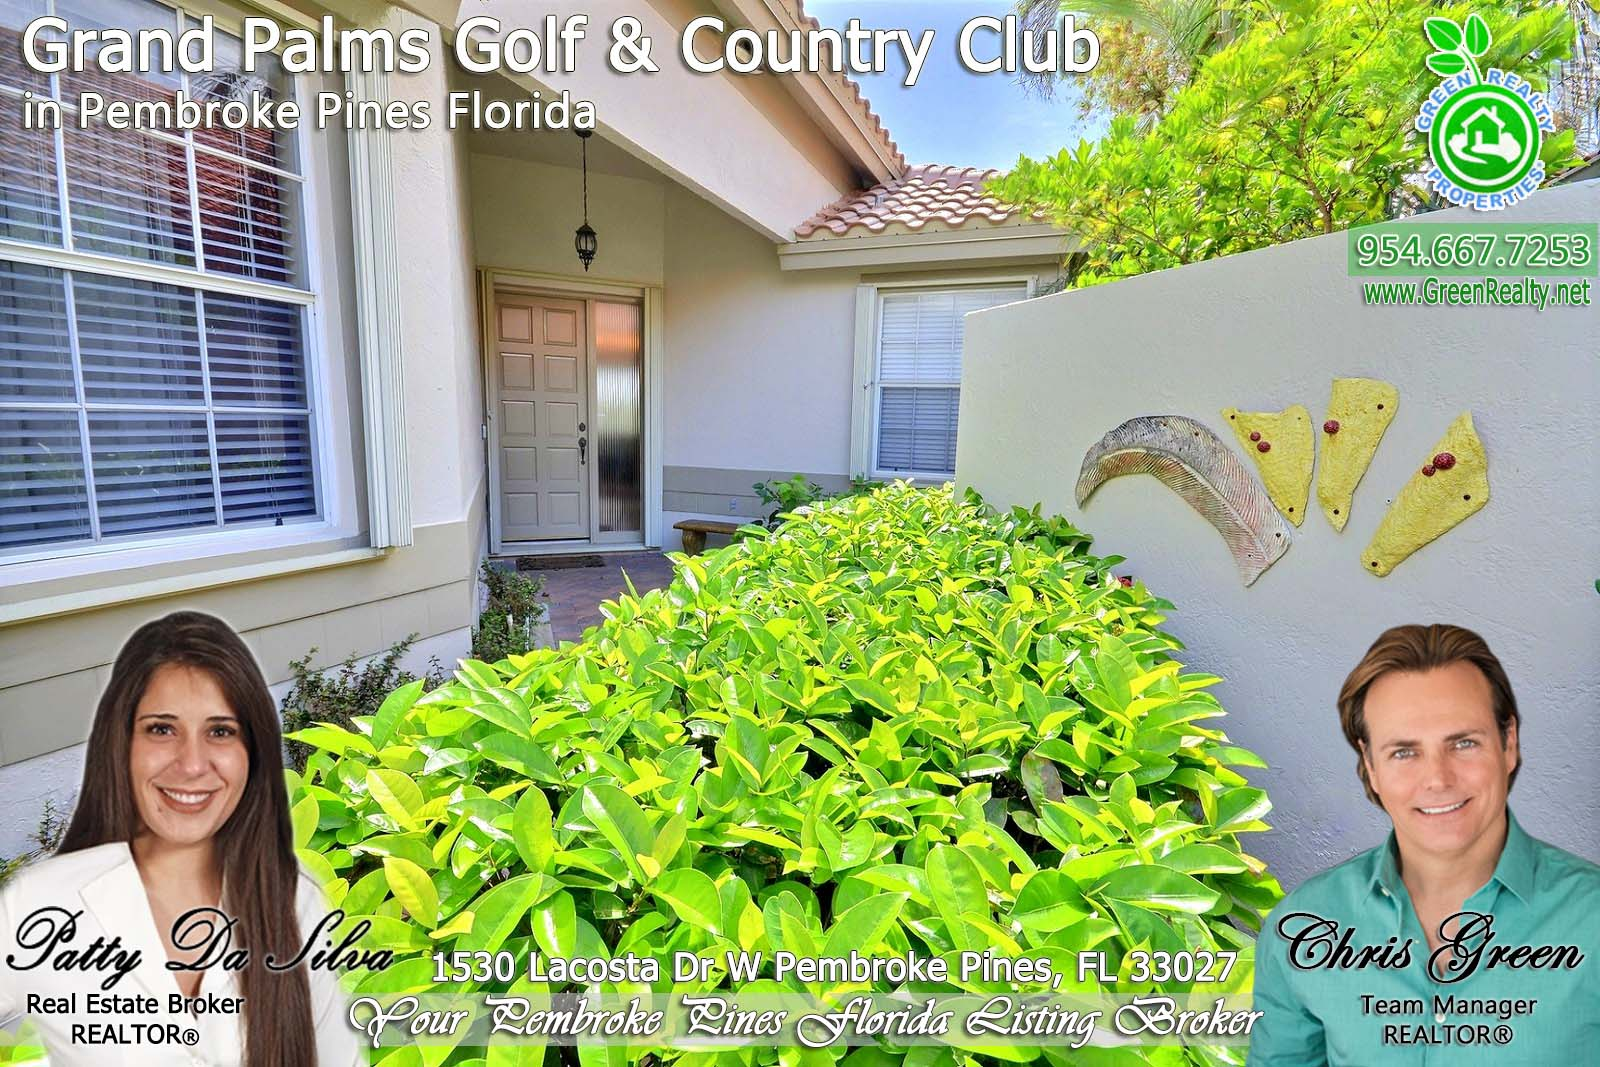 Homes For Sale in Grand Palms Pembroke Pines